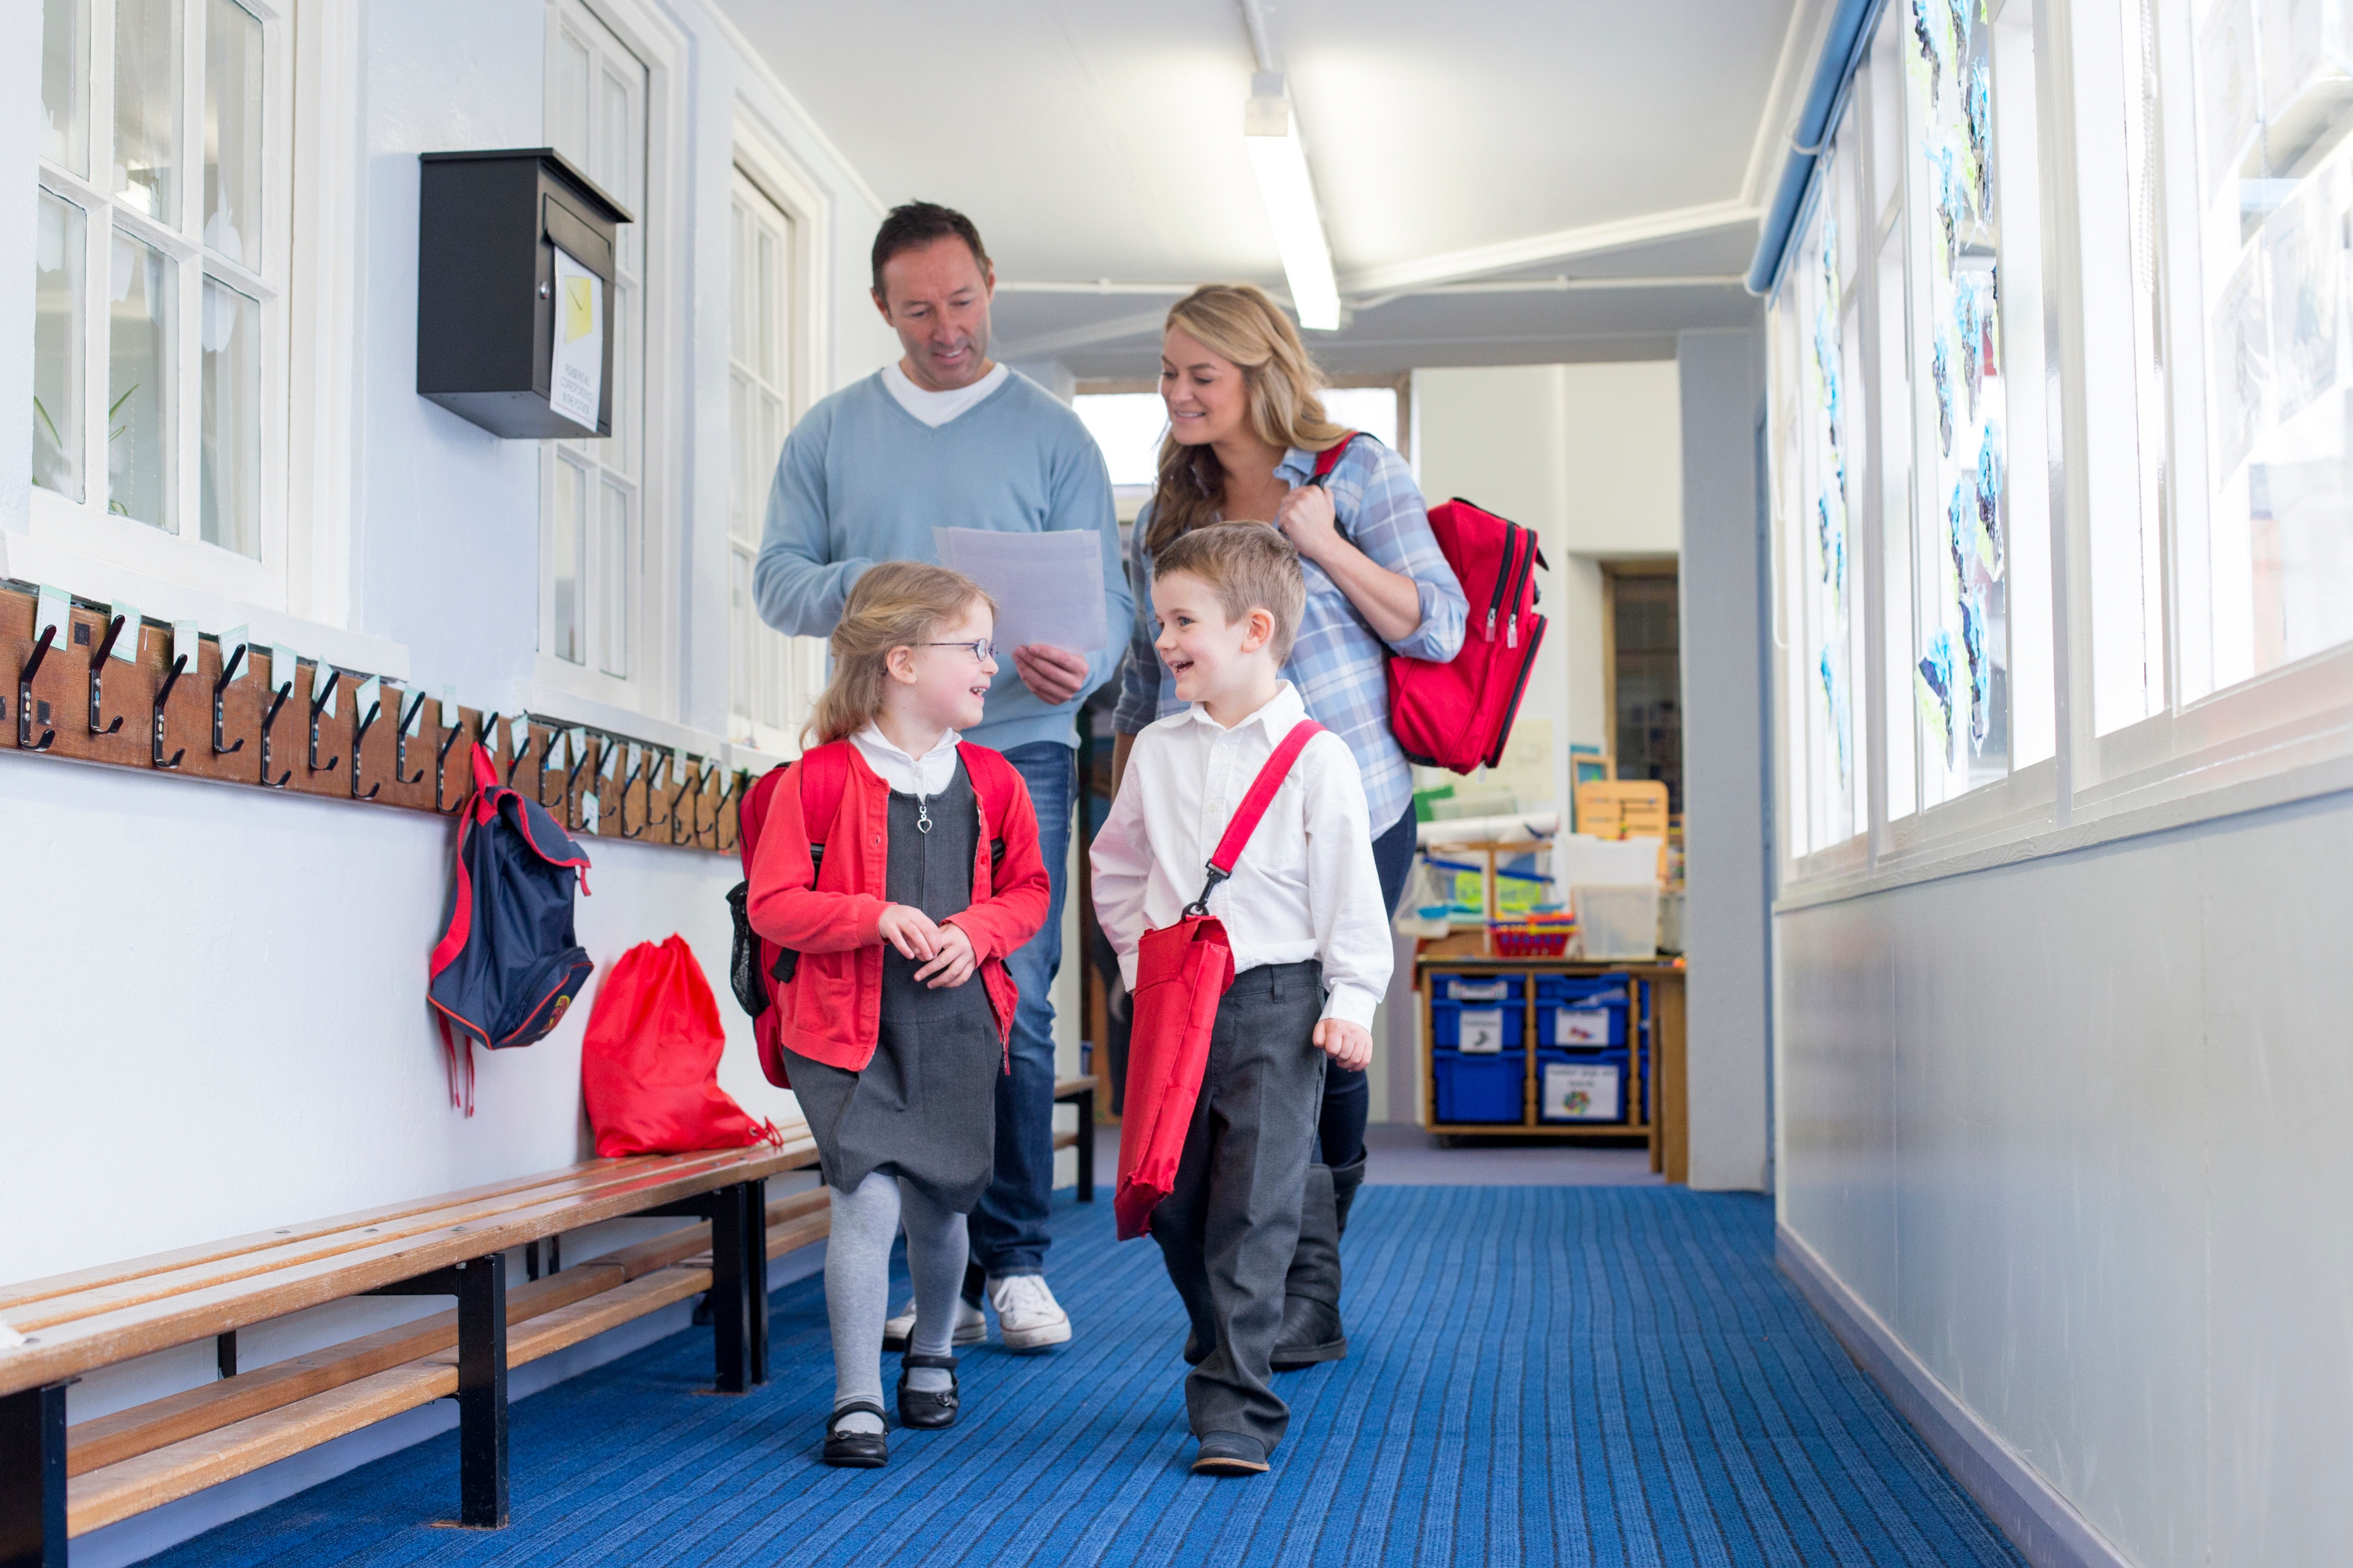 Private school management software can keep parents happy and connected.